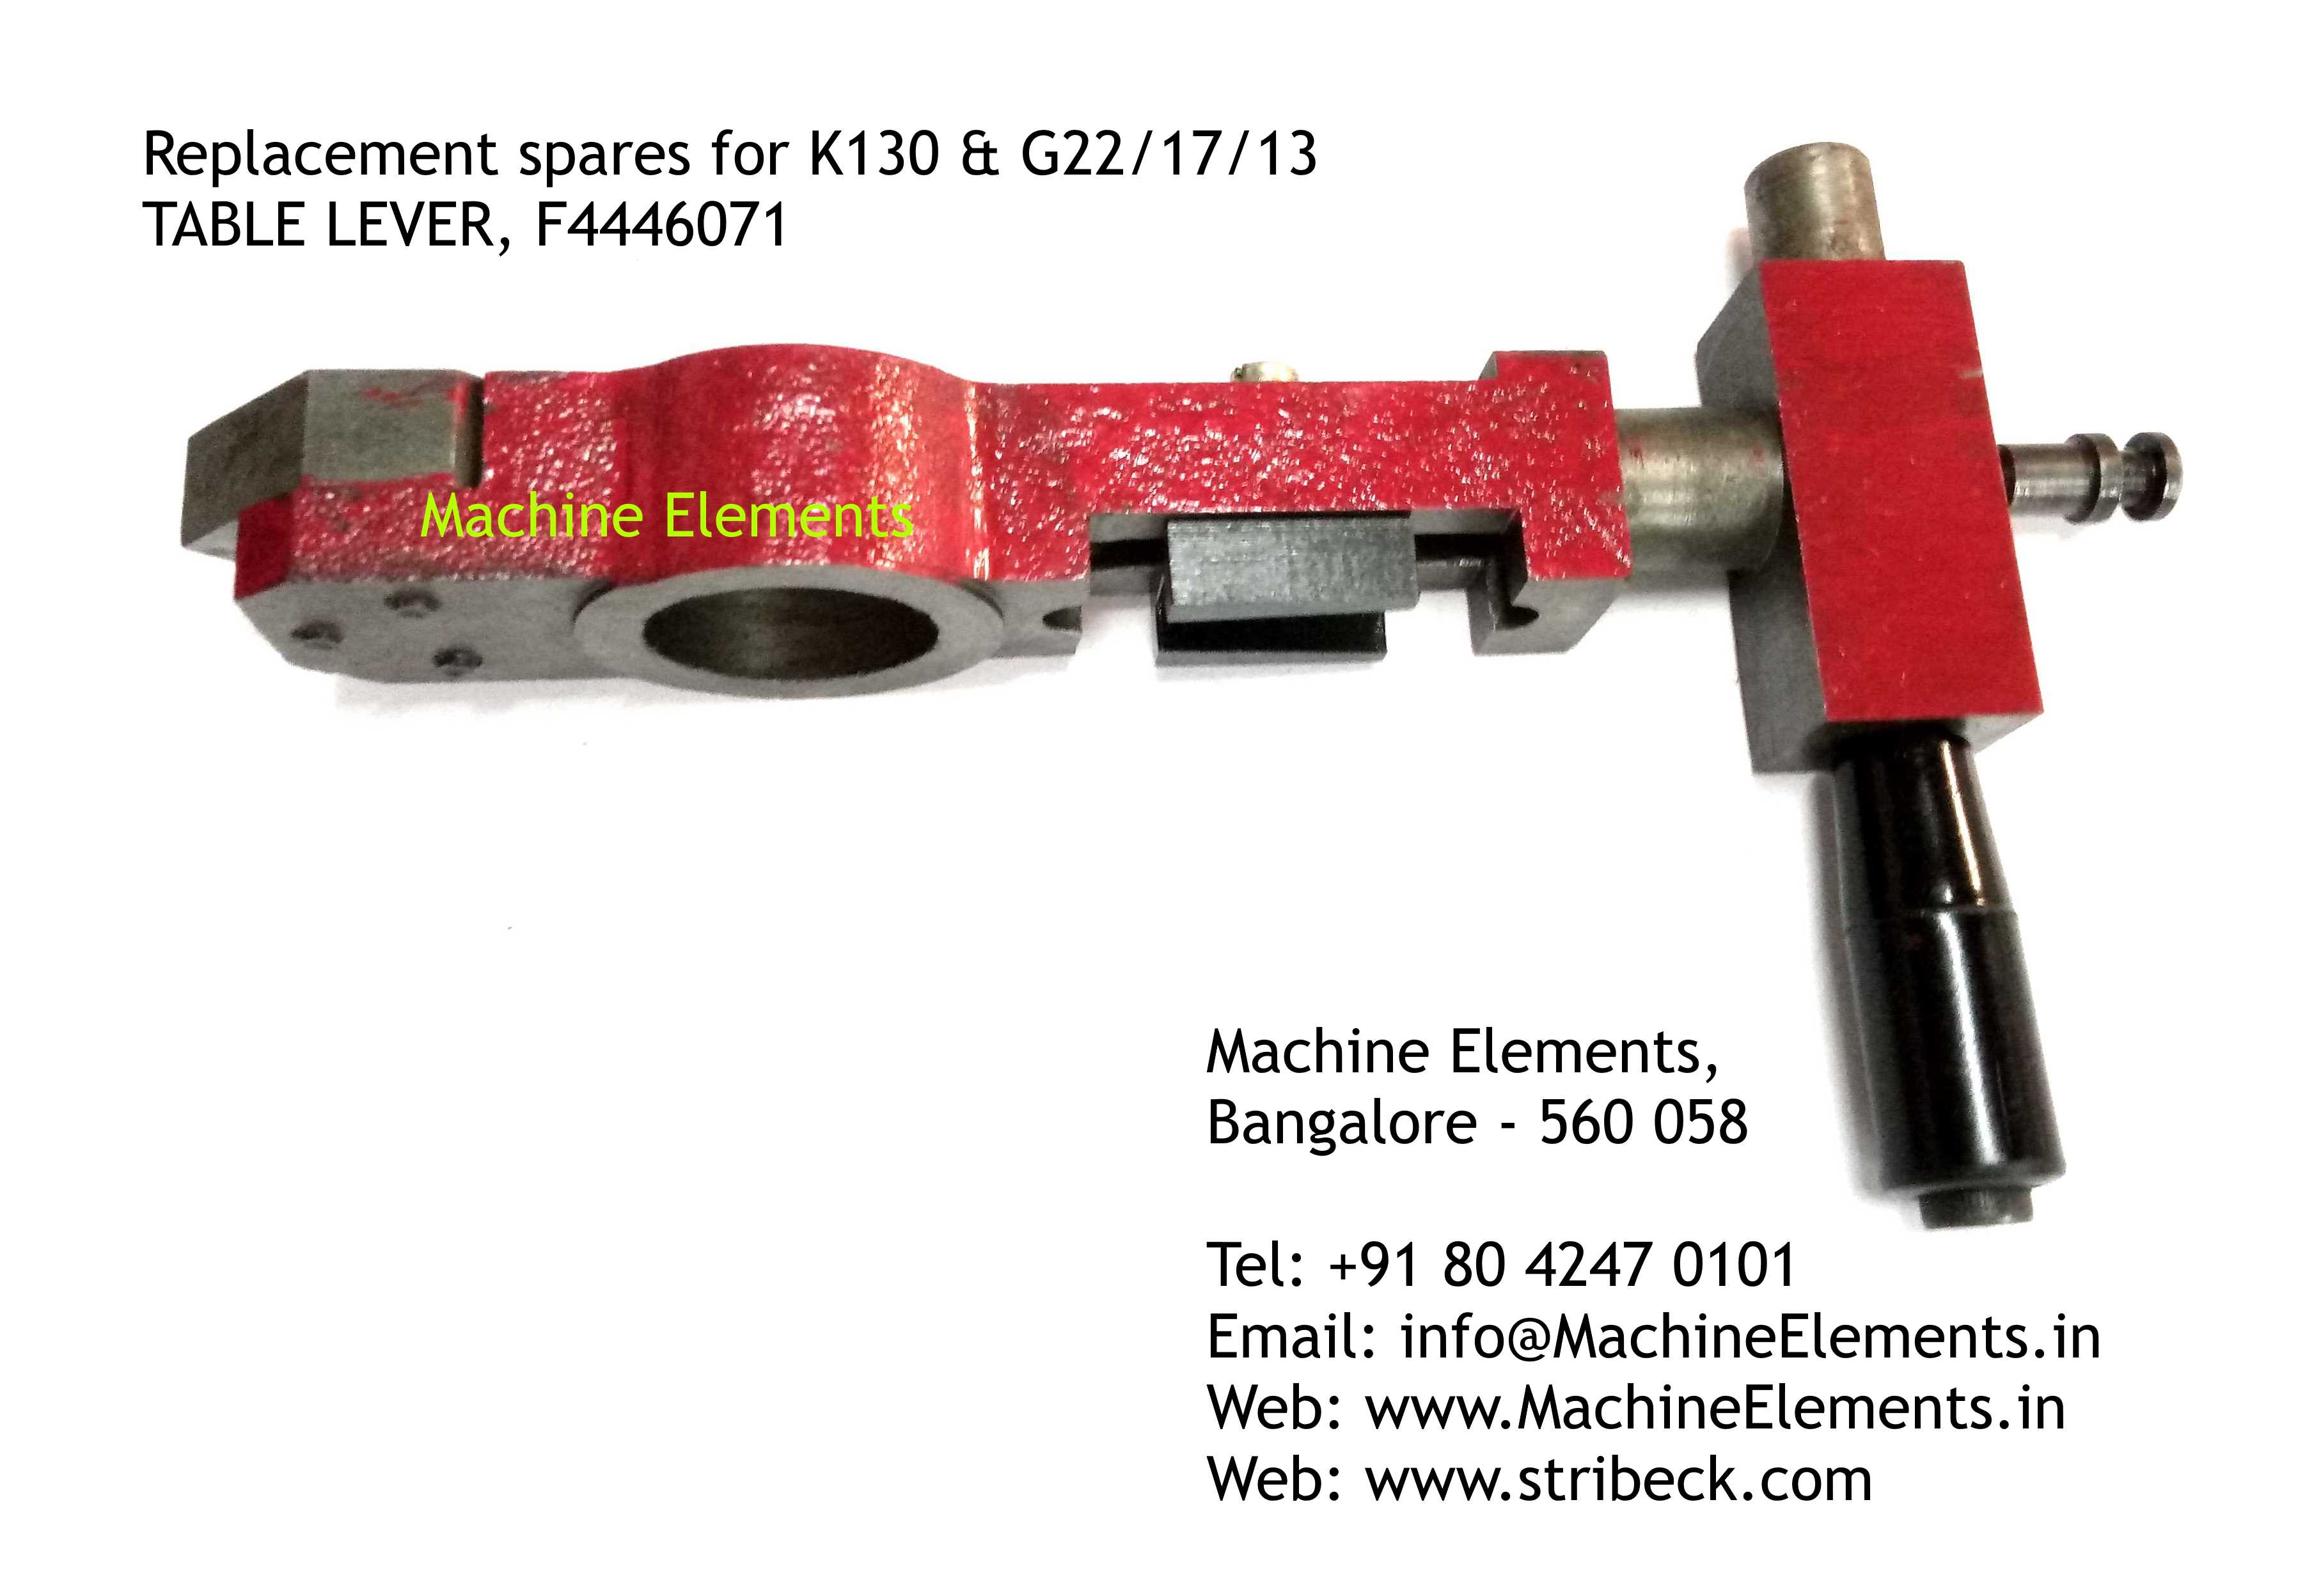 TABLE LEVER, F4446071